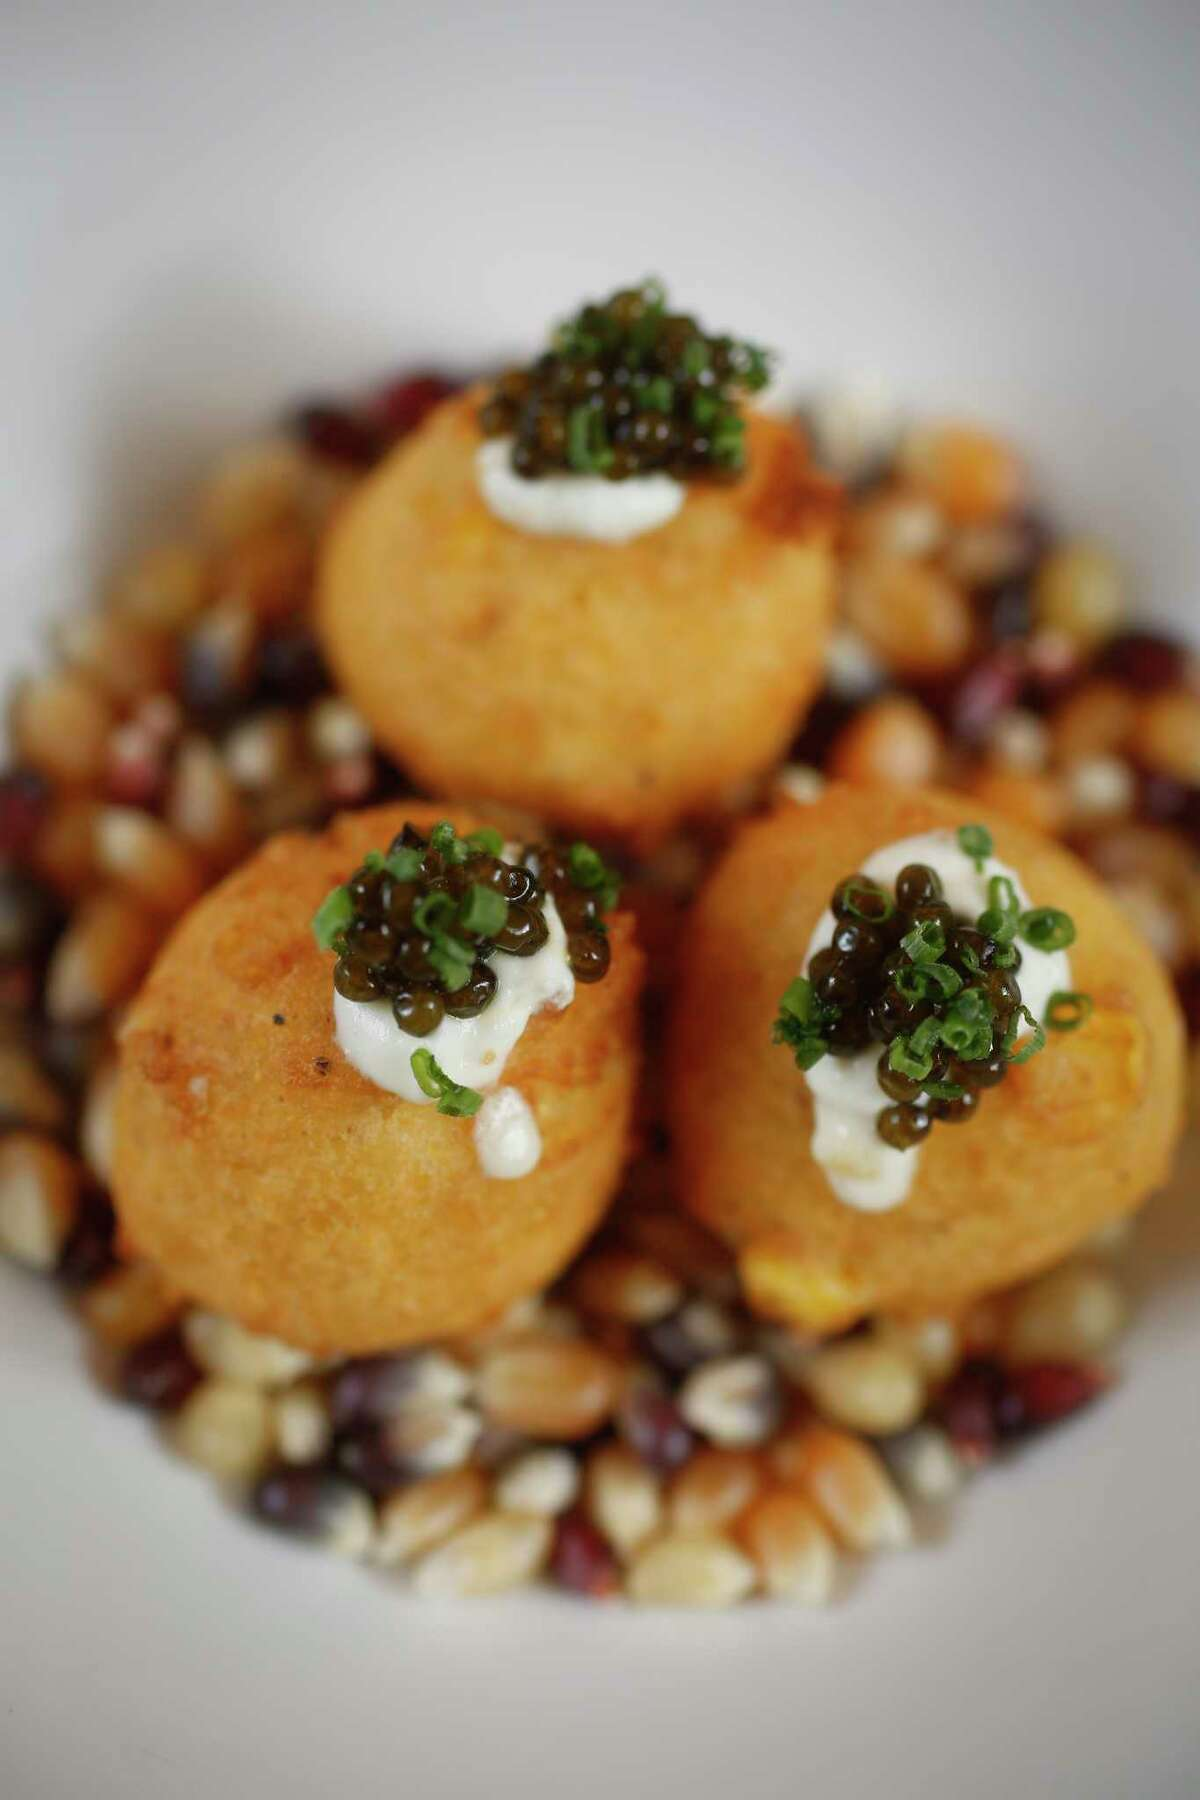 Hush puppies with whipped creme fraîche and caviar at Mutiny Wine Room.